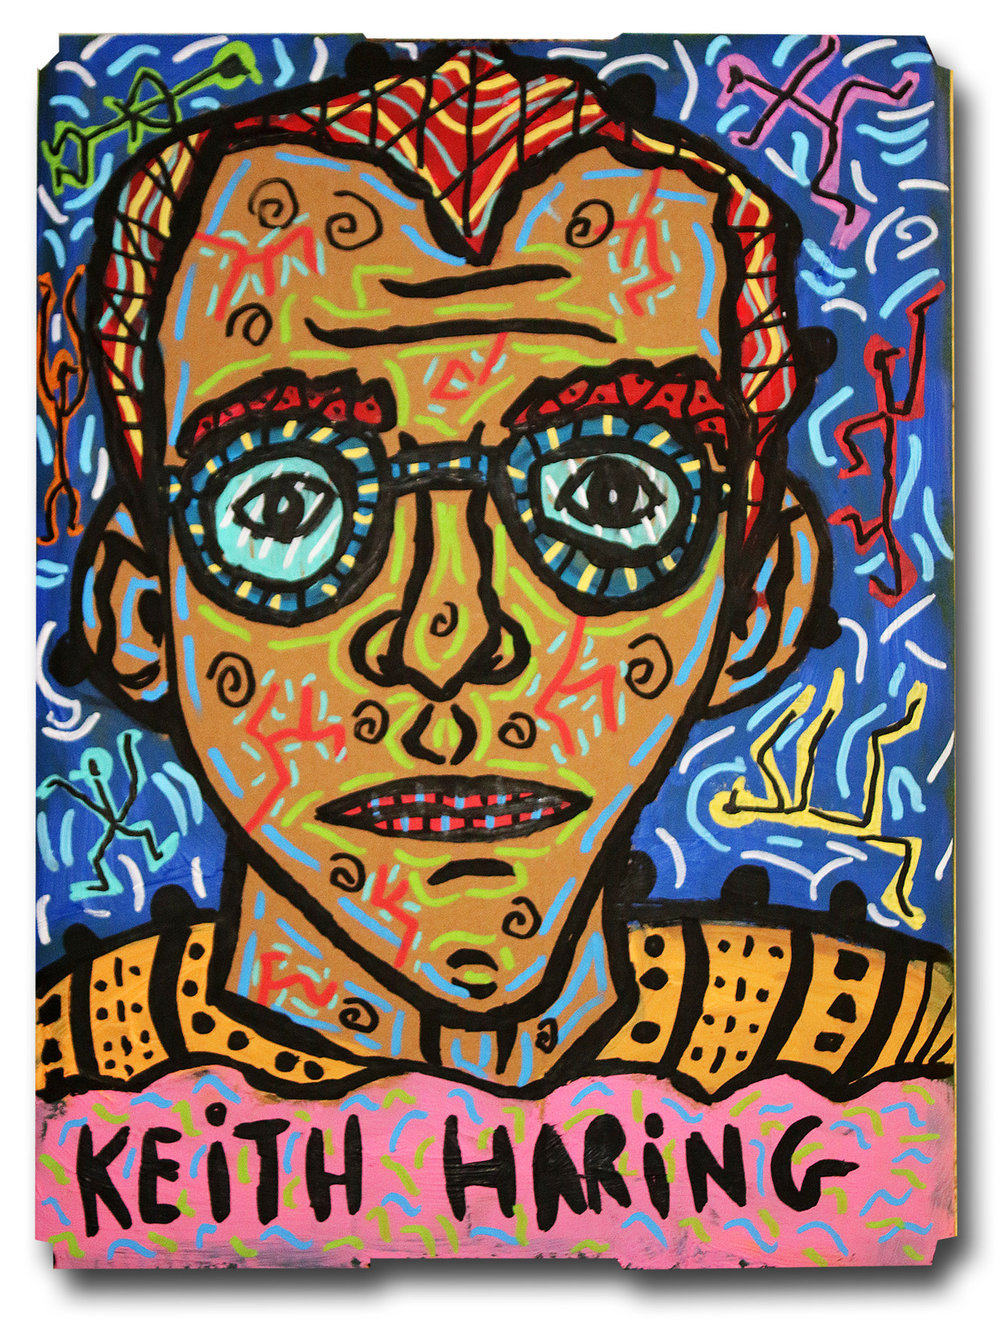 """Keith Haring"" , 2018   Acrylic paint and Posca marker on cardboard, 30 x 40 cm"